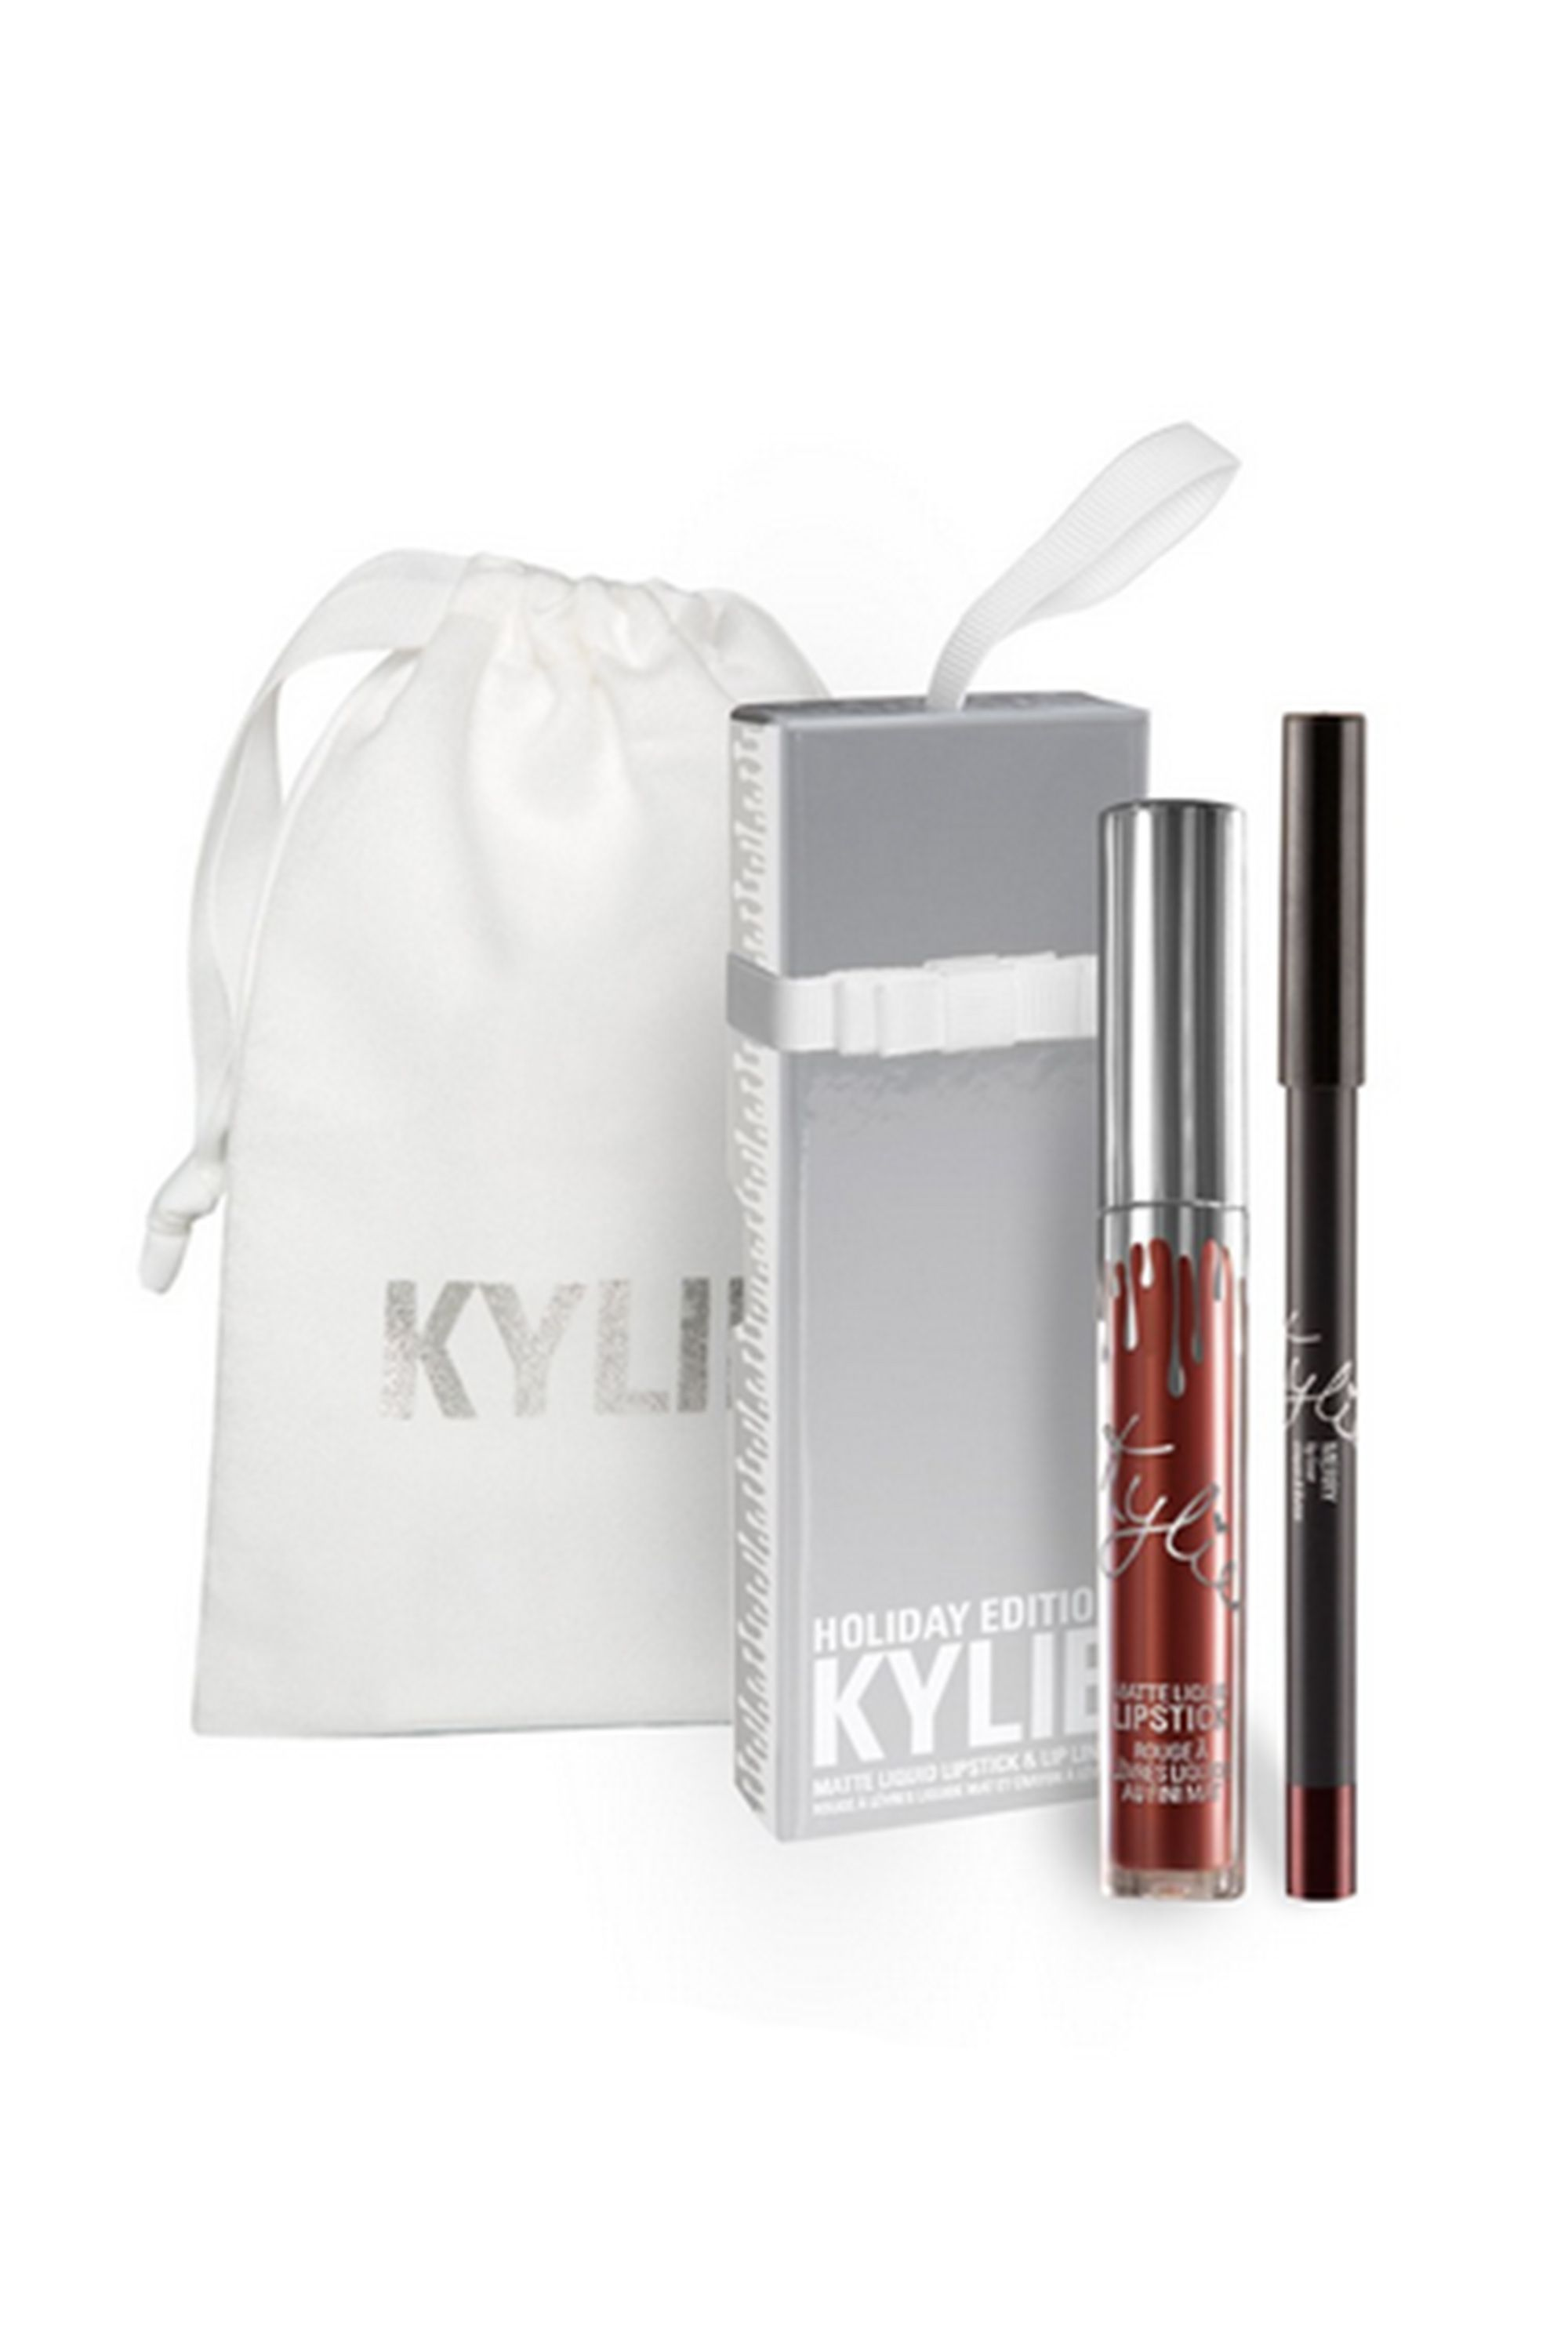 "<p>In the viral beauty wars that were 2016, Kylie was, well, you know, king. While all her launches have been met with similar fervor, the lip kit craze hit peak Google search volume and crashed her site in late March, just as she restocked her shades for the second time. </p><p><em data-verified=""redactor"" data-redactor-tag=""em"">Kylie Cosmetics Matte Liquid Lip Kit</em><span class=""redactor-invisible-space"" data-verified=""redactor"" data-redactor-tag=""span"" data-redactor-class=""redactor-invisible-space"">, <em data-verified=""redactor"" data-redactor-tag=""em"">$29; <a href=""https://www.kyliecosmetics.com/collections/matte-lip-kits-gift-bag"" data-tracking-id=""recirc-text-link"">kyliecosmetics.com</a></em></span><br></p>"